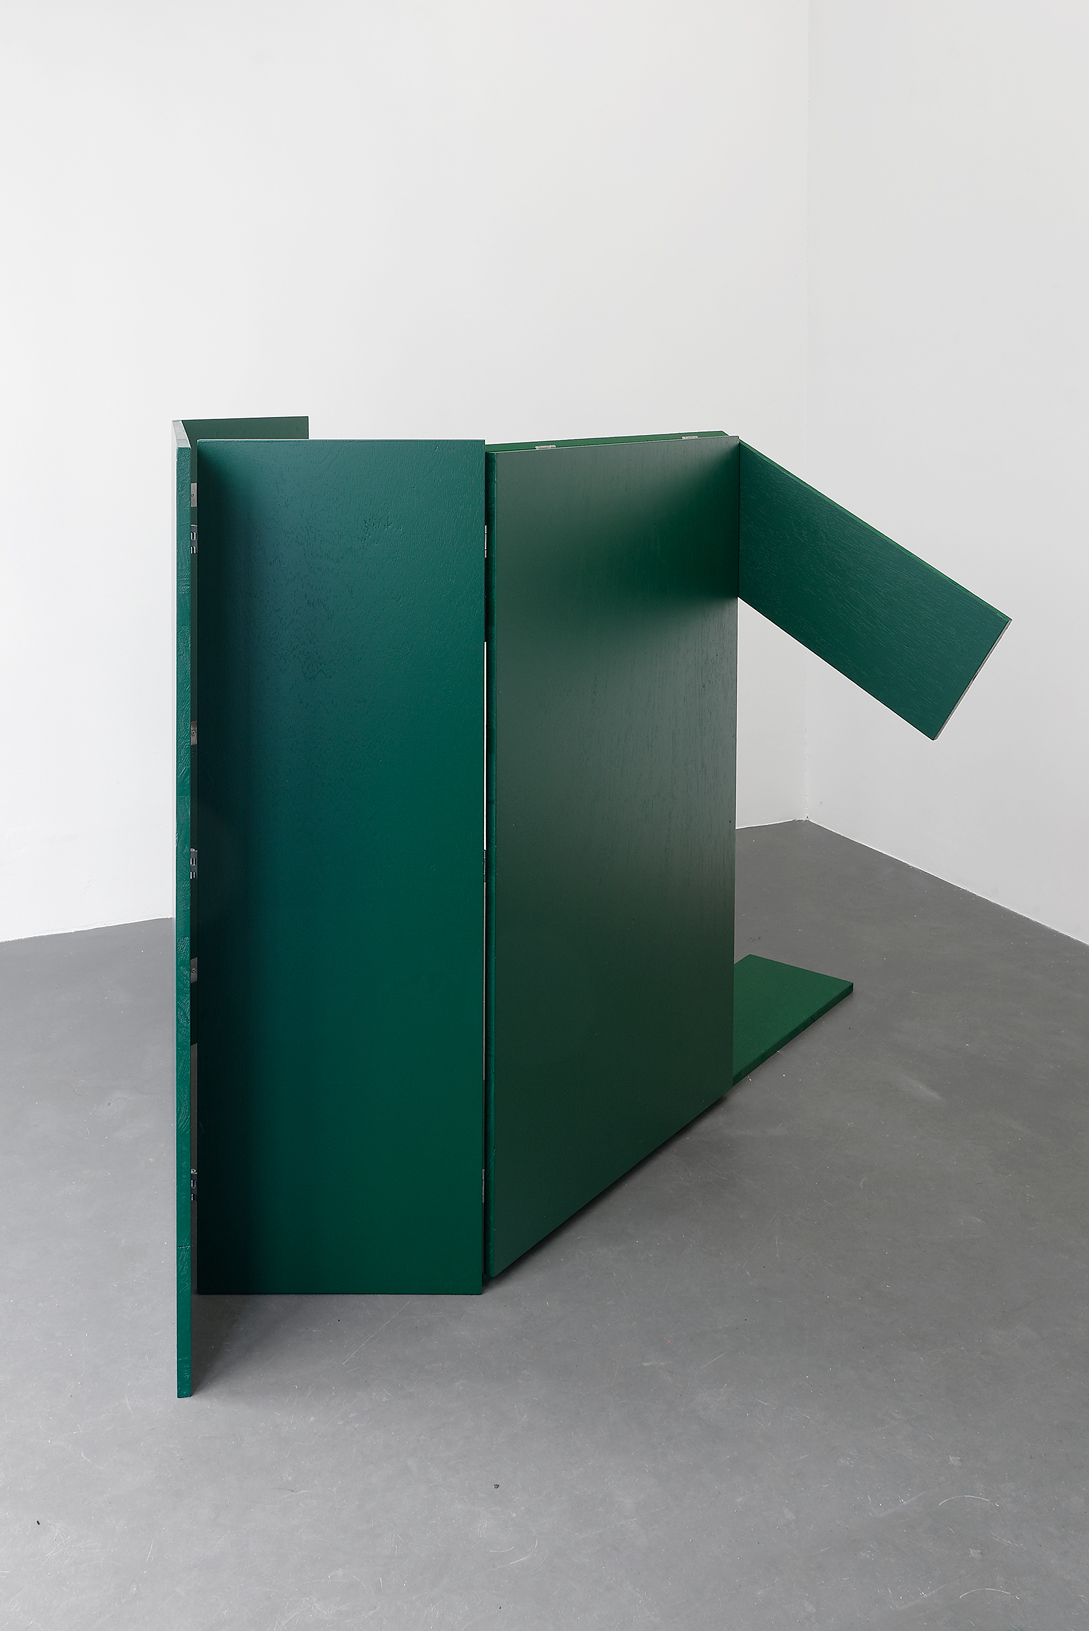 , 2016, Wood, paint and hinges, 42 x 96 x 74 cm (closed), , unique artwork, Photo: Aurélien Mole